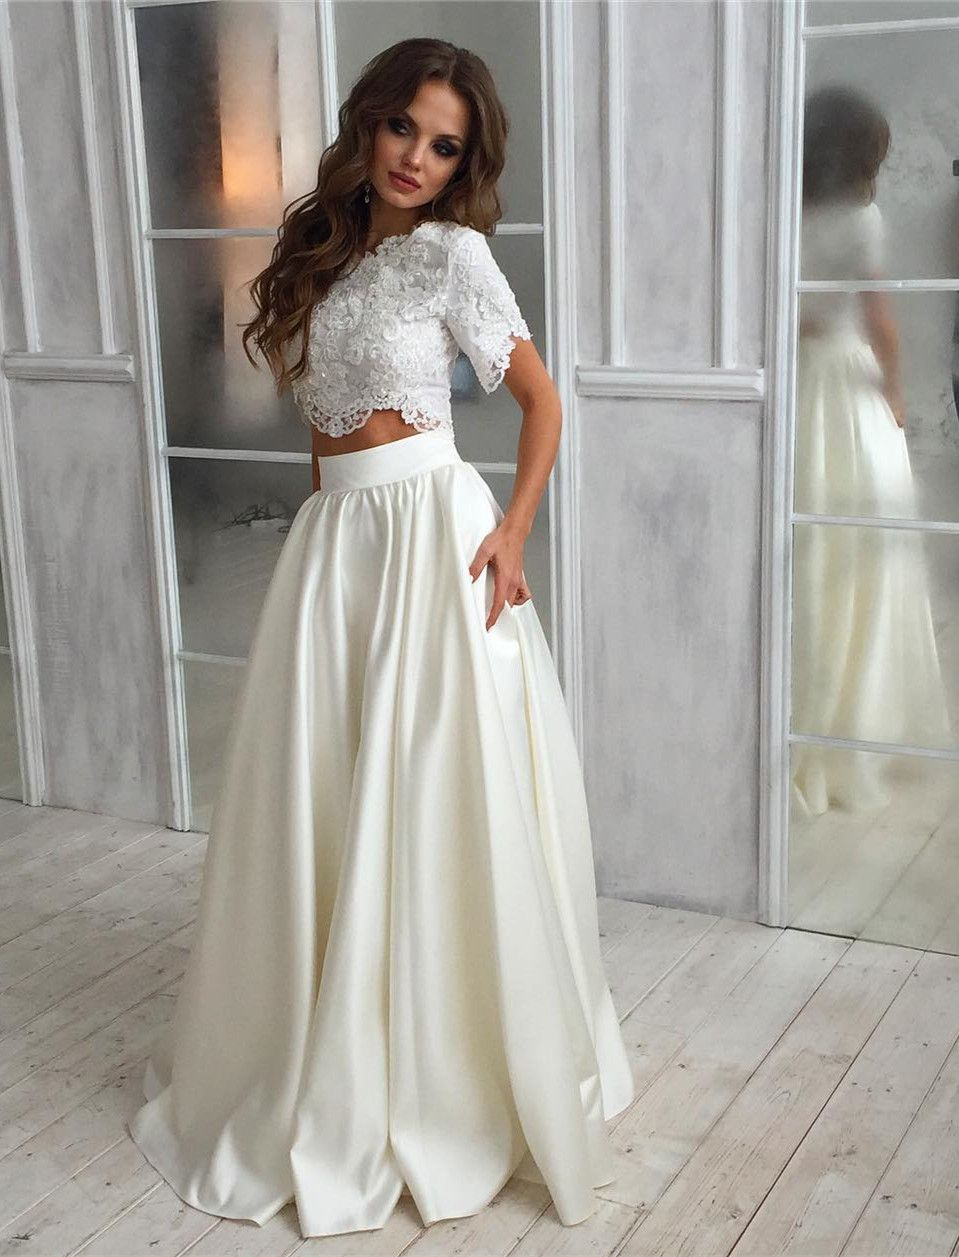 Elegant 2 Pieces Wedding Dresses With Short Sleeves Pockets Wedding Short Sleeve Wedding Dress Wedding Dress With Pockets Spring Wedding Dress